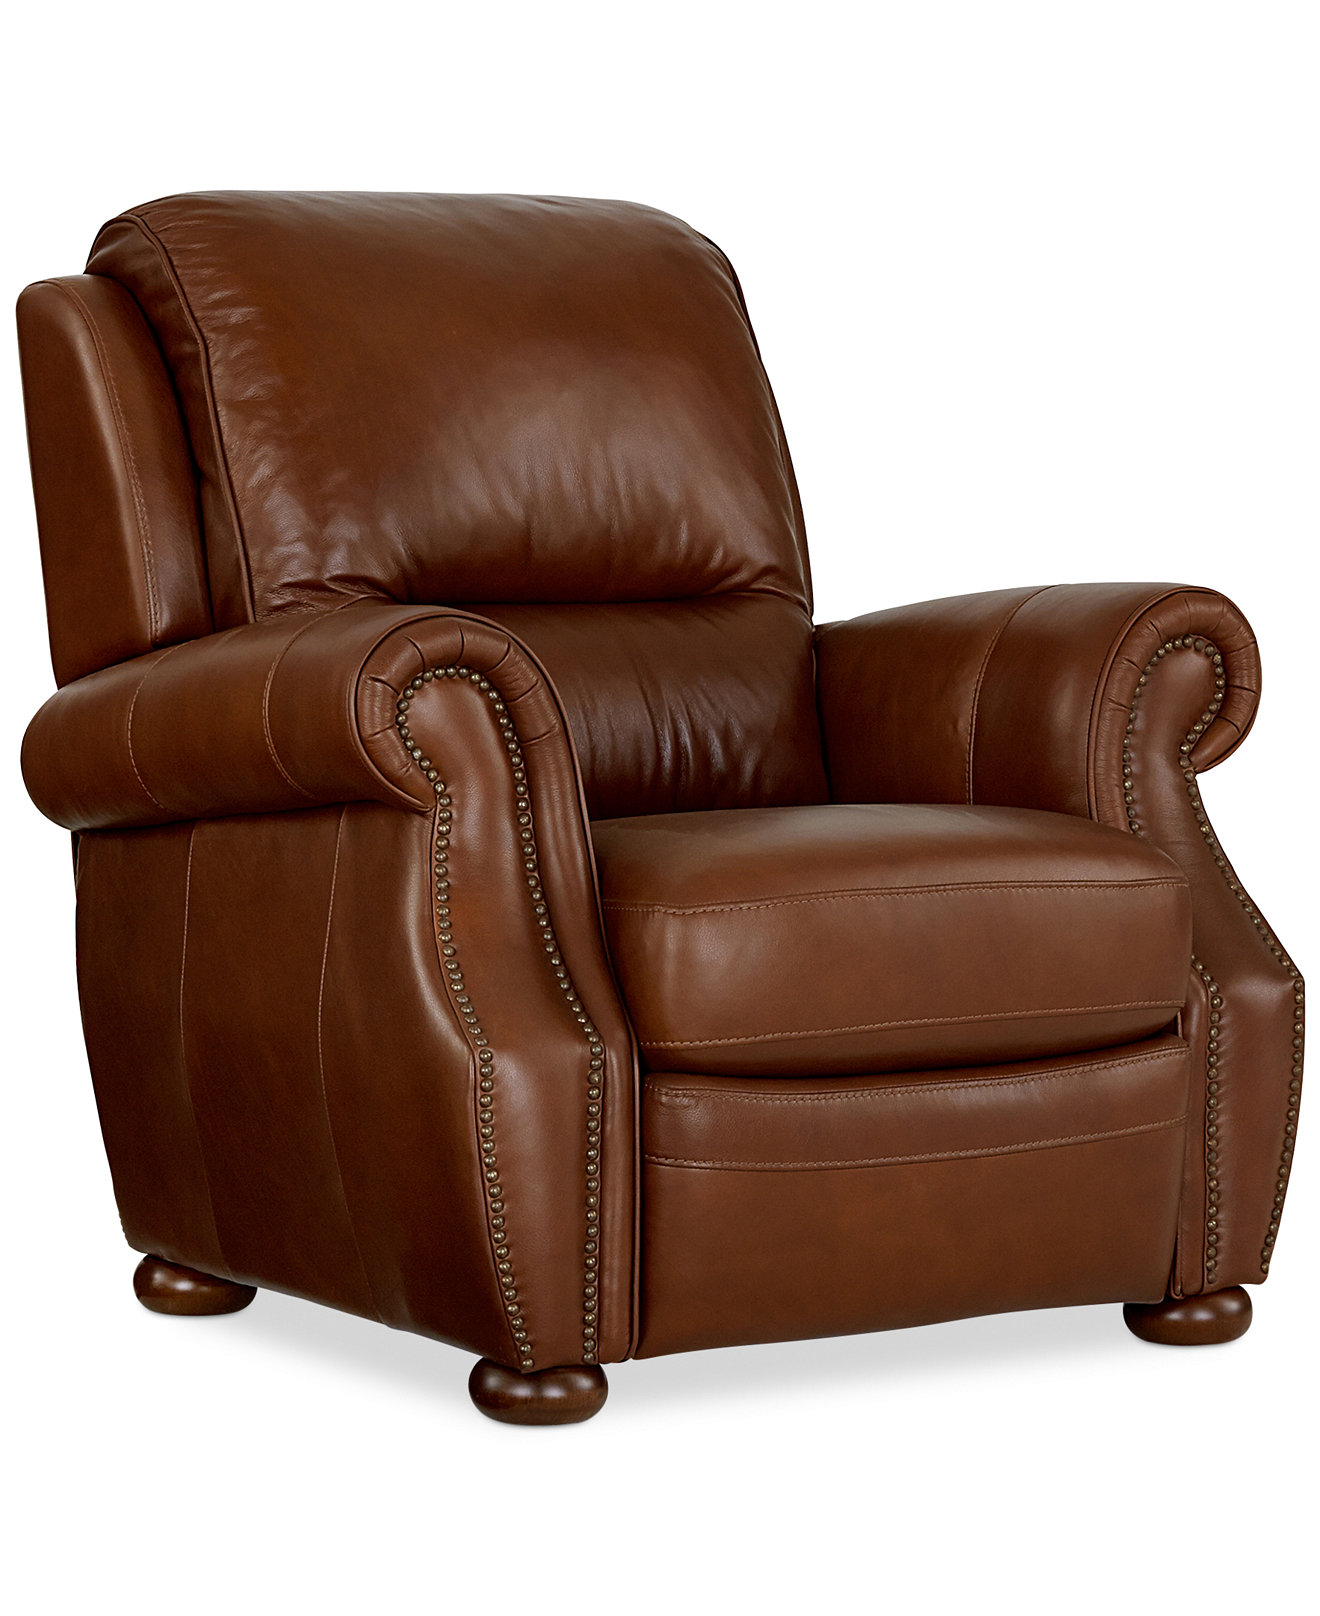 Image of: Good Club Chair Recliner